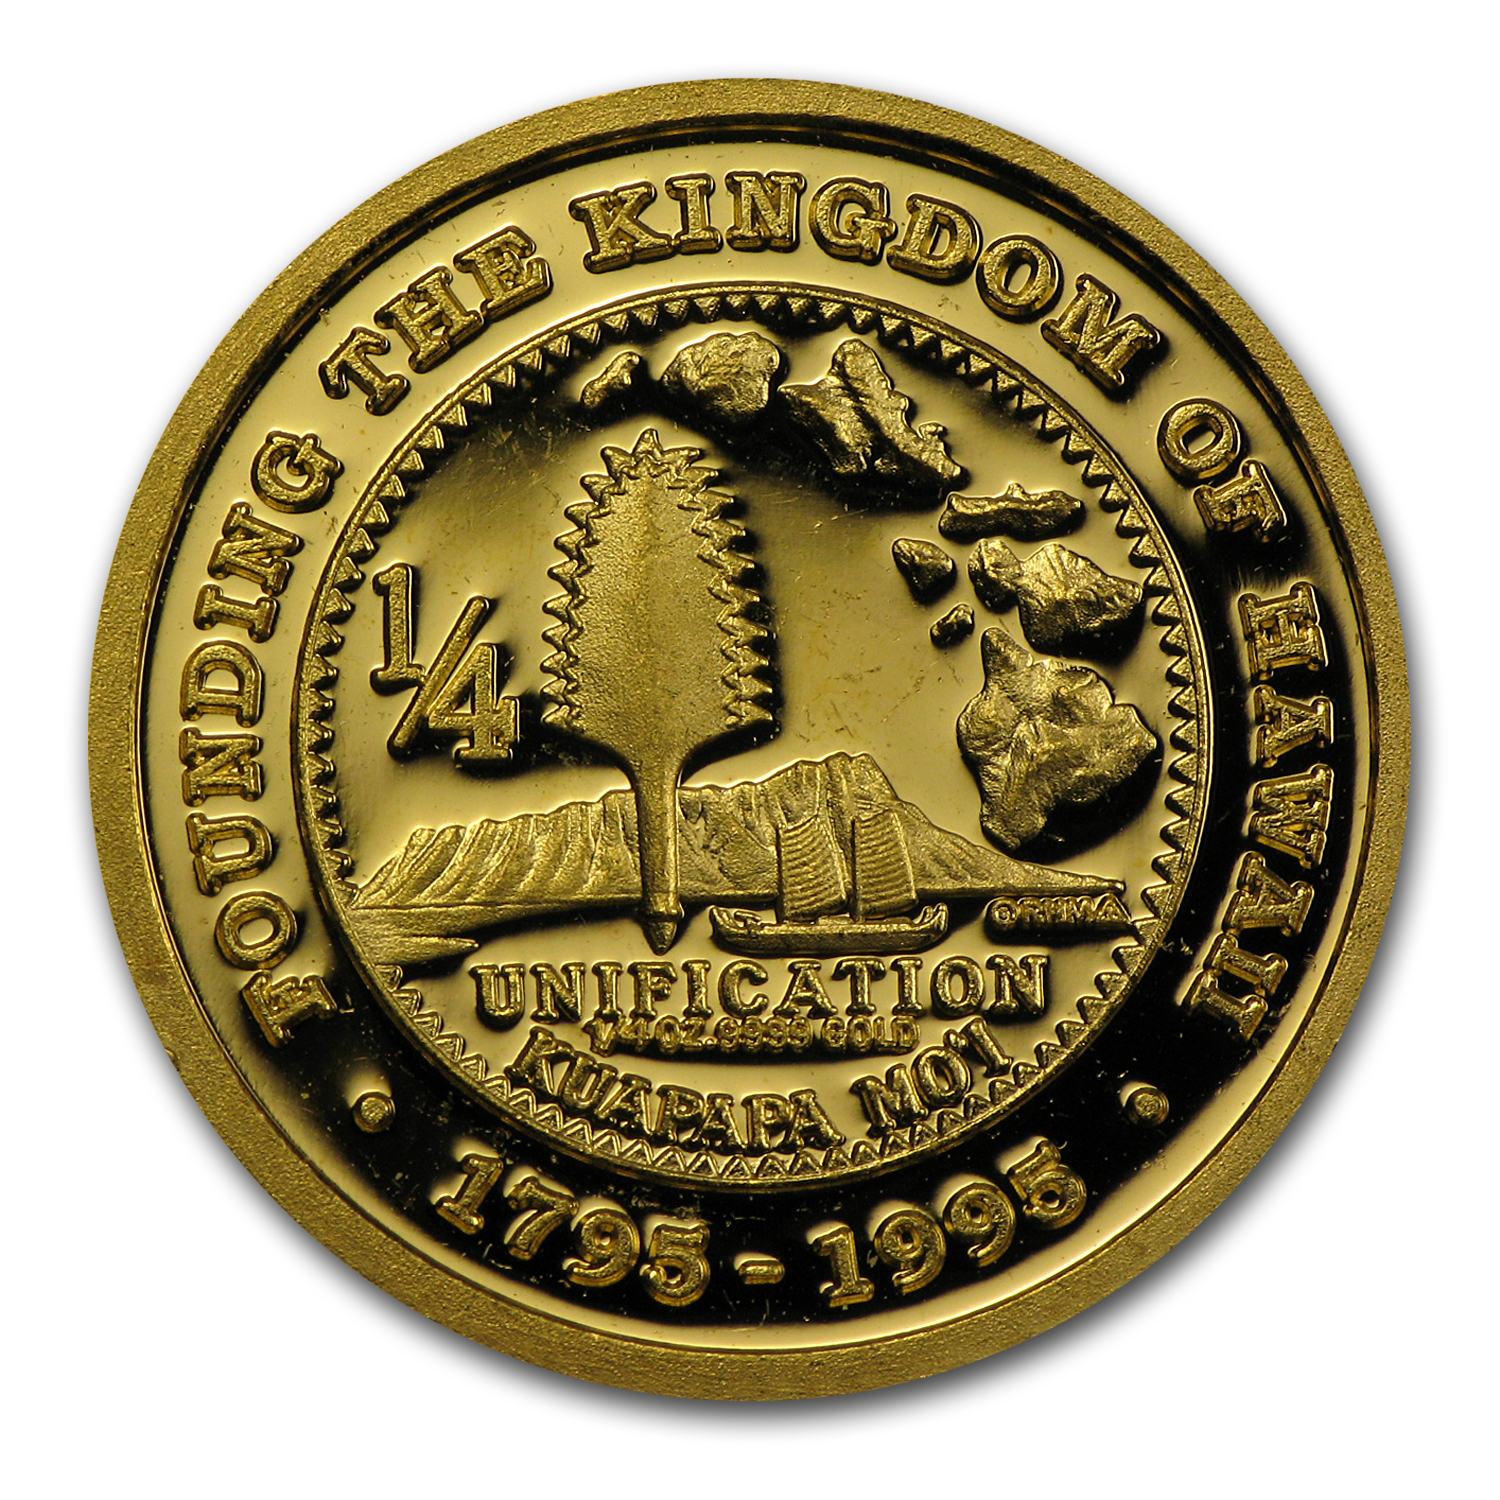 1/4 oz Gold Rounds - Hawaii 200th Anniversary (1795-1995)